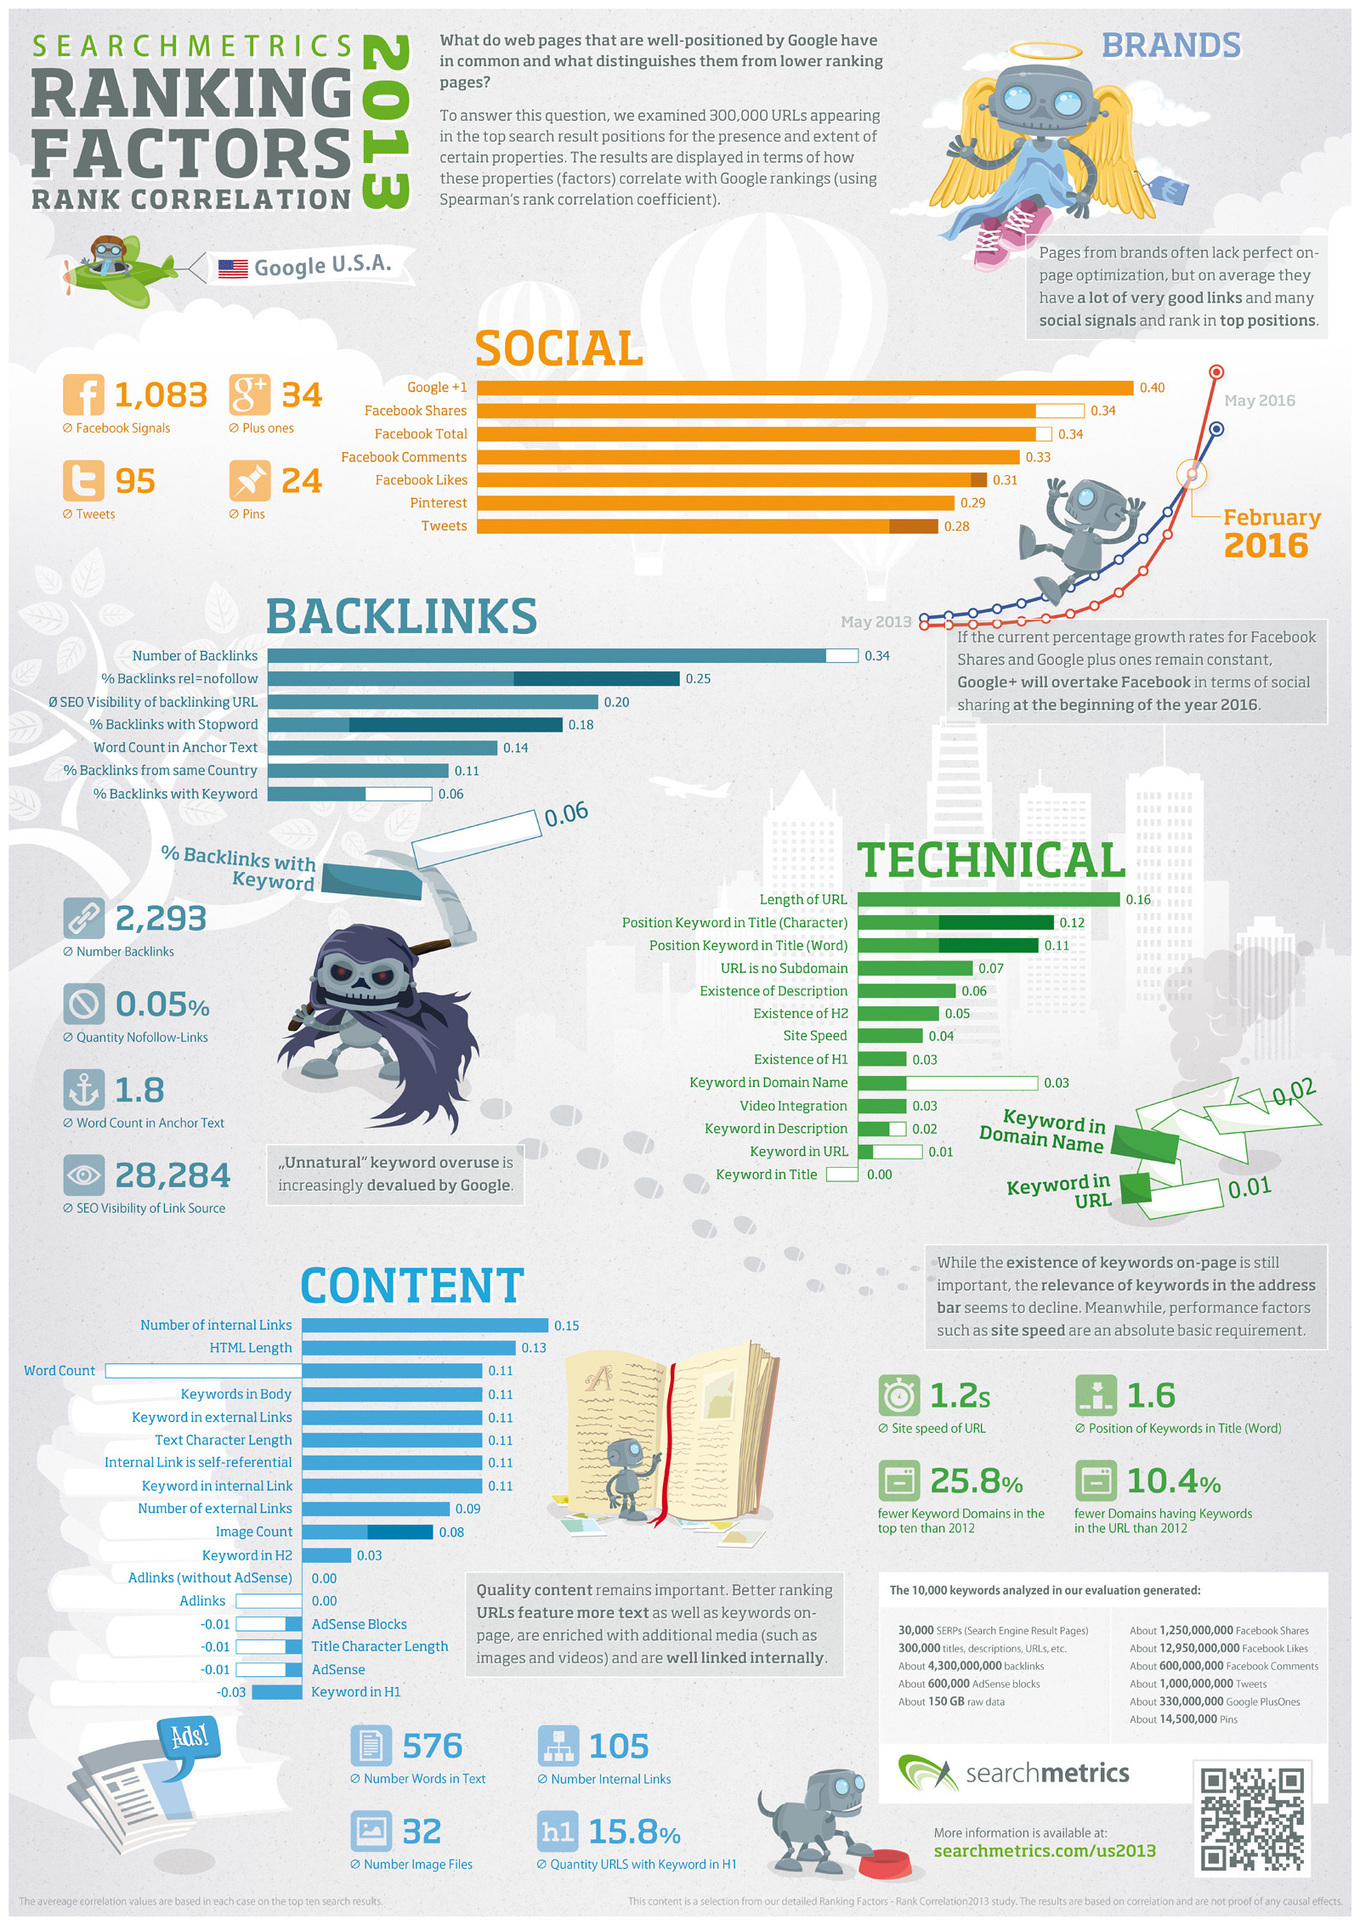 The importance of Social on SEO Ranking